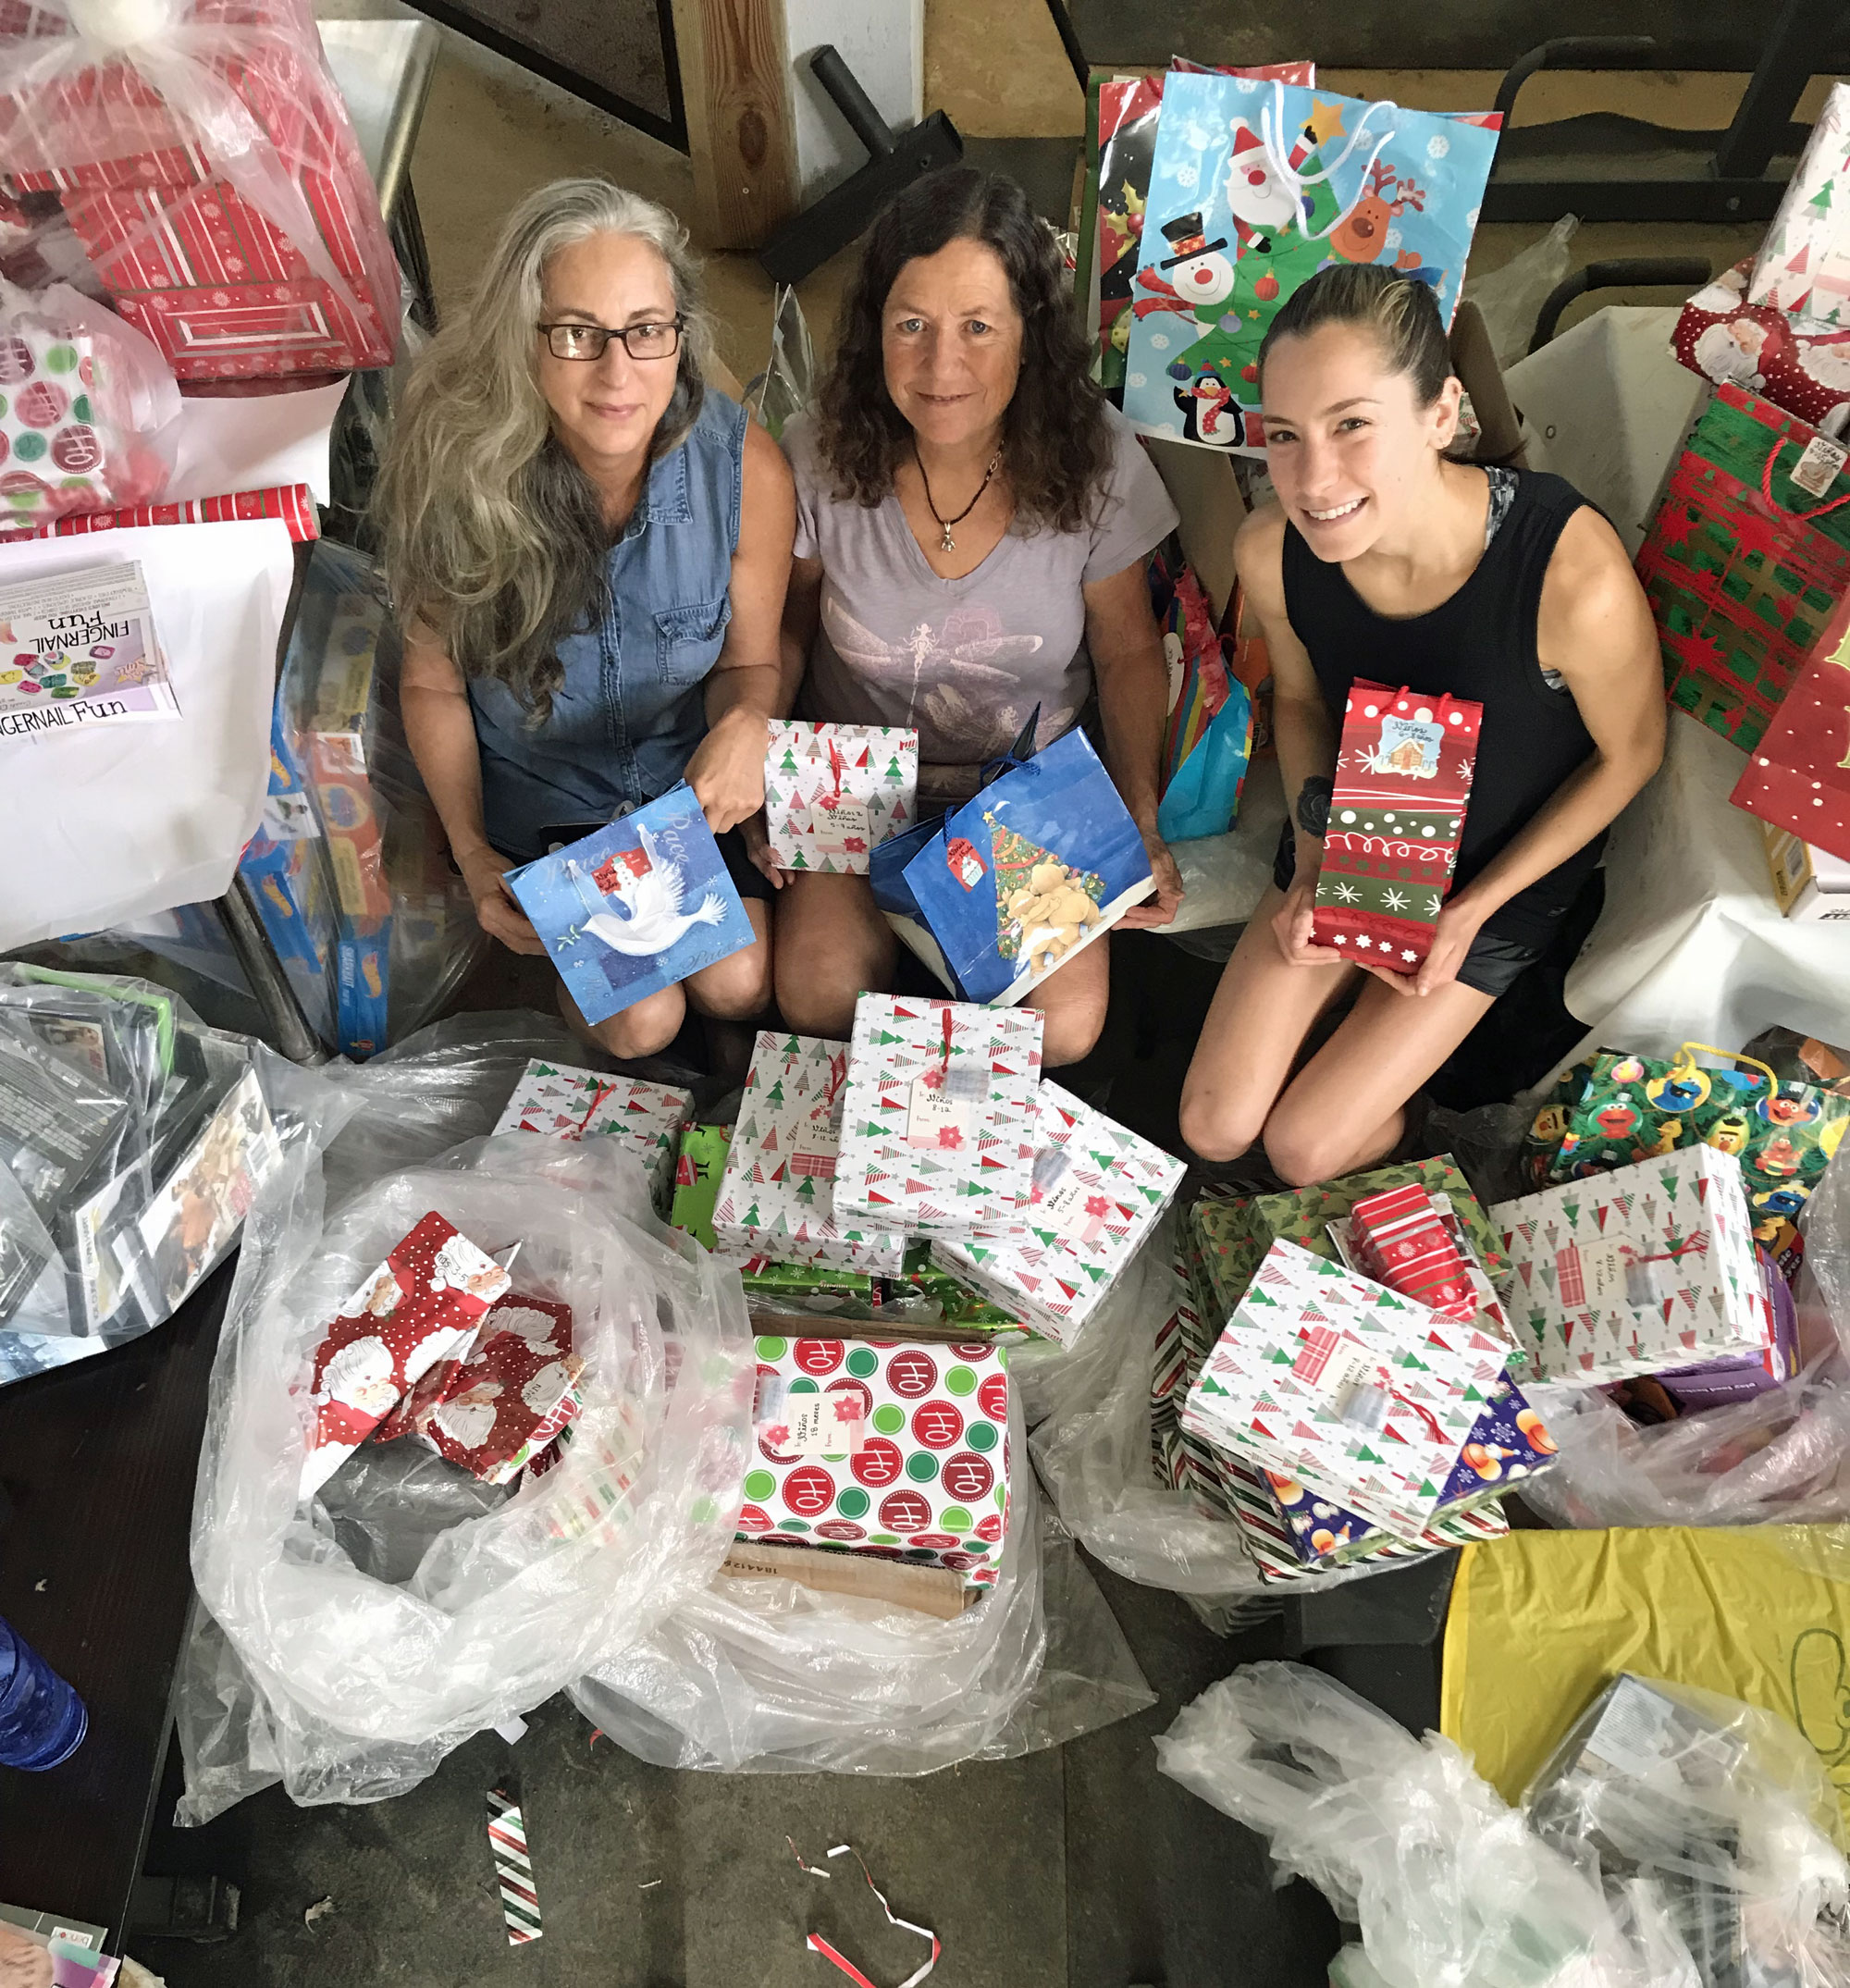 Renée, Laurie Michaels and Melina Devoney posing during their present wrapping